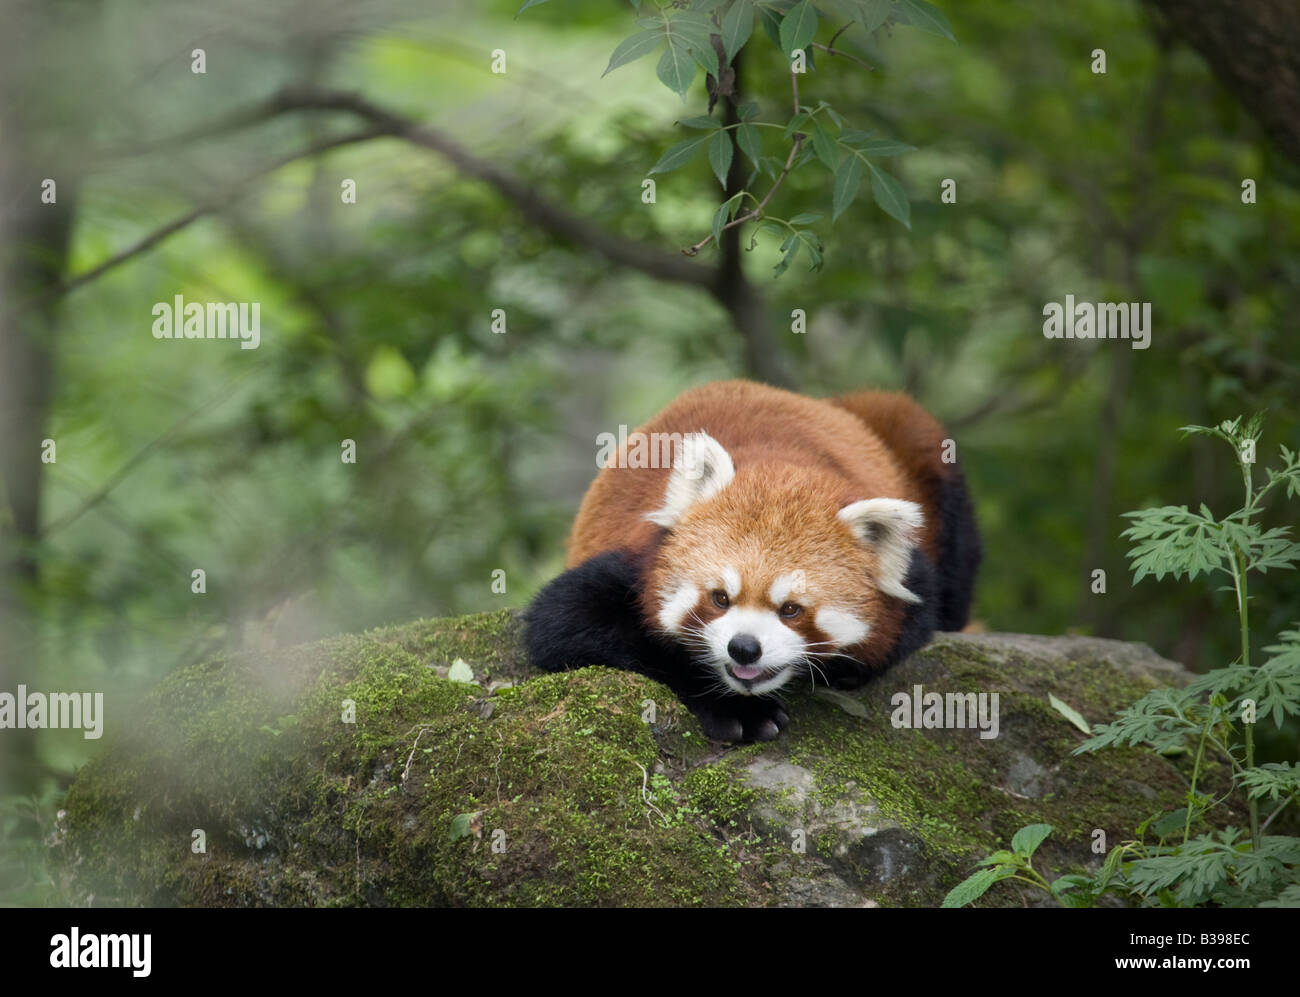 In many species of animals and plants occupying within narrow elevational ranges. Red Panda Ailurus Fulgens In Wolong Nature Reserve Montane Forest China Stock Photo Alamy